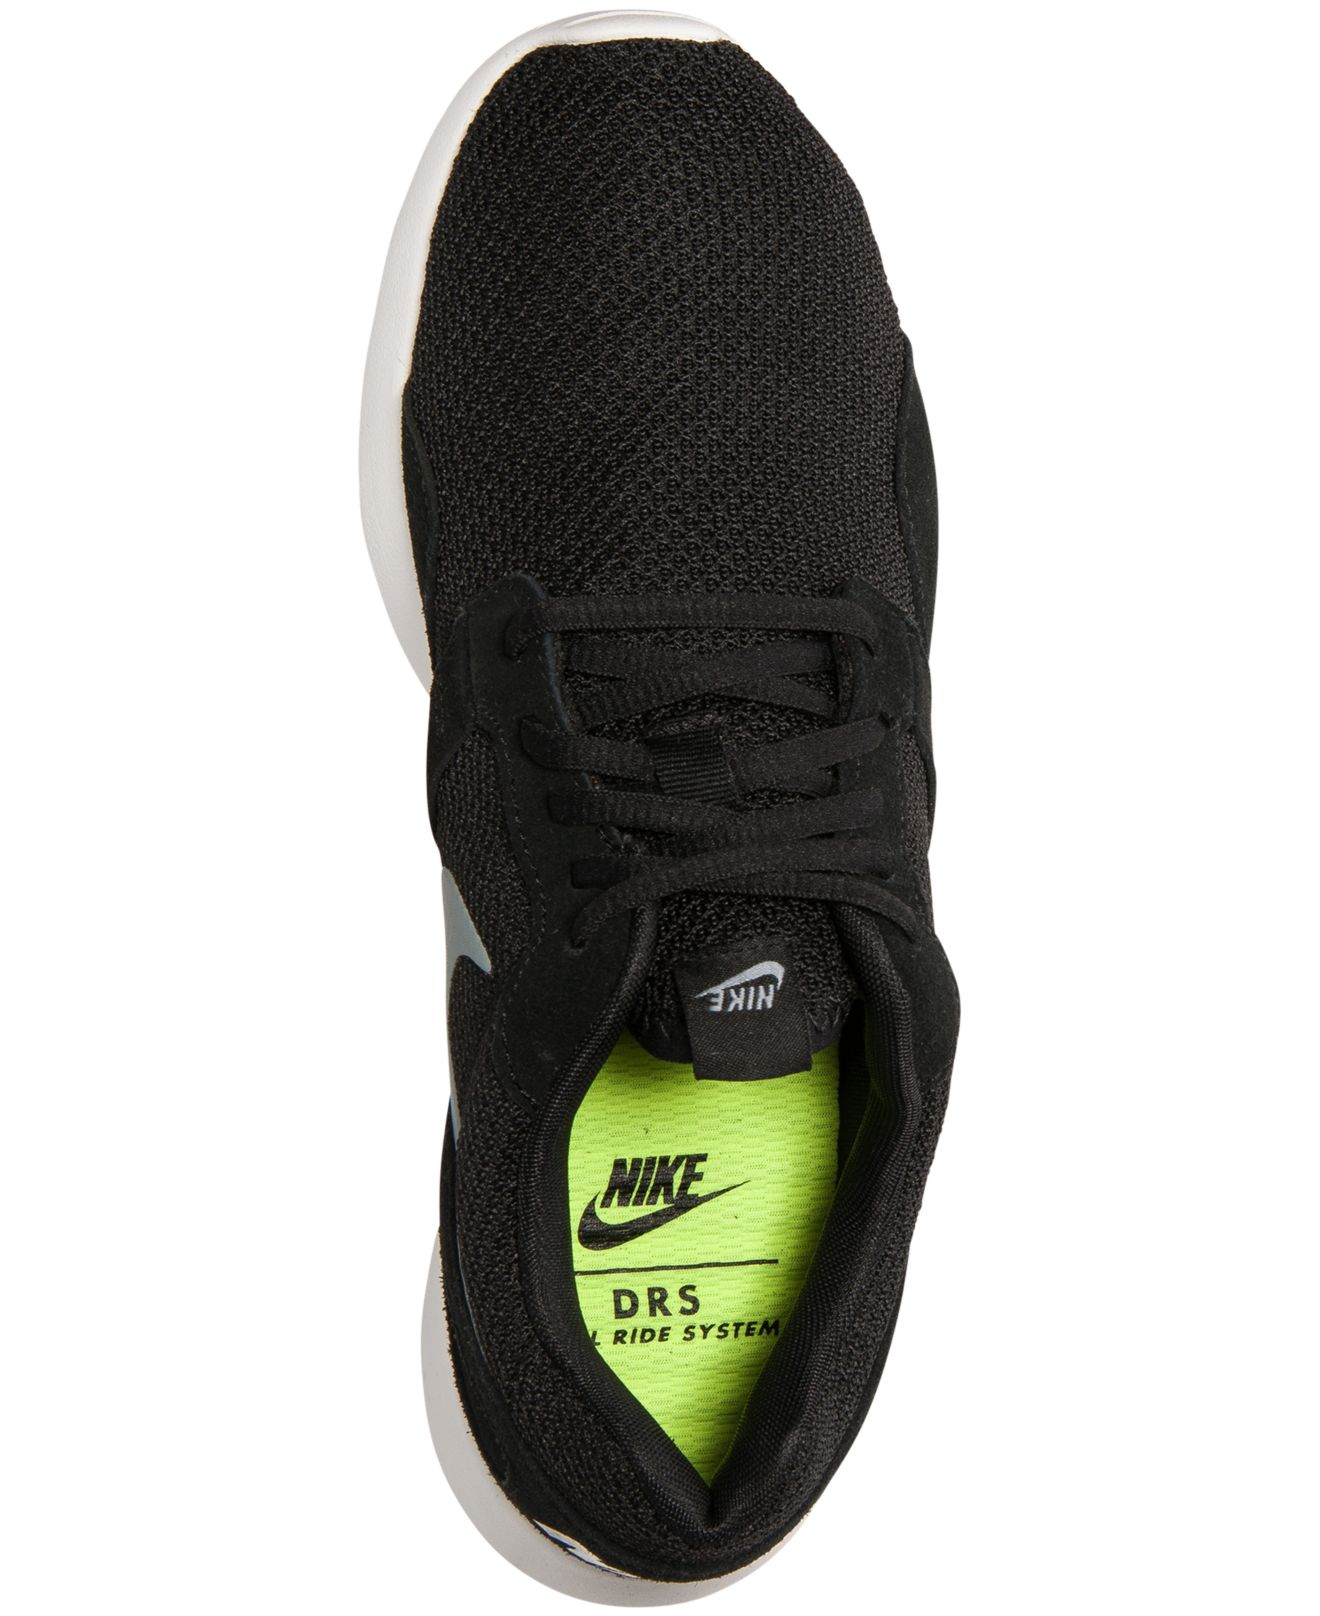 promo code 7d240 e4e91 How to clean nike kaishi